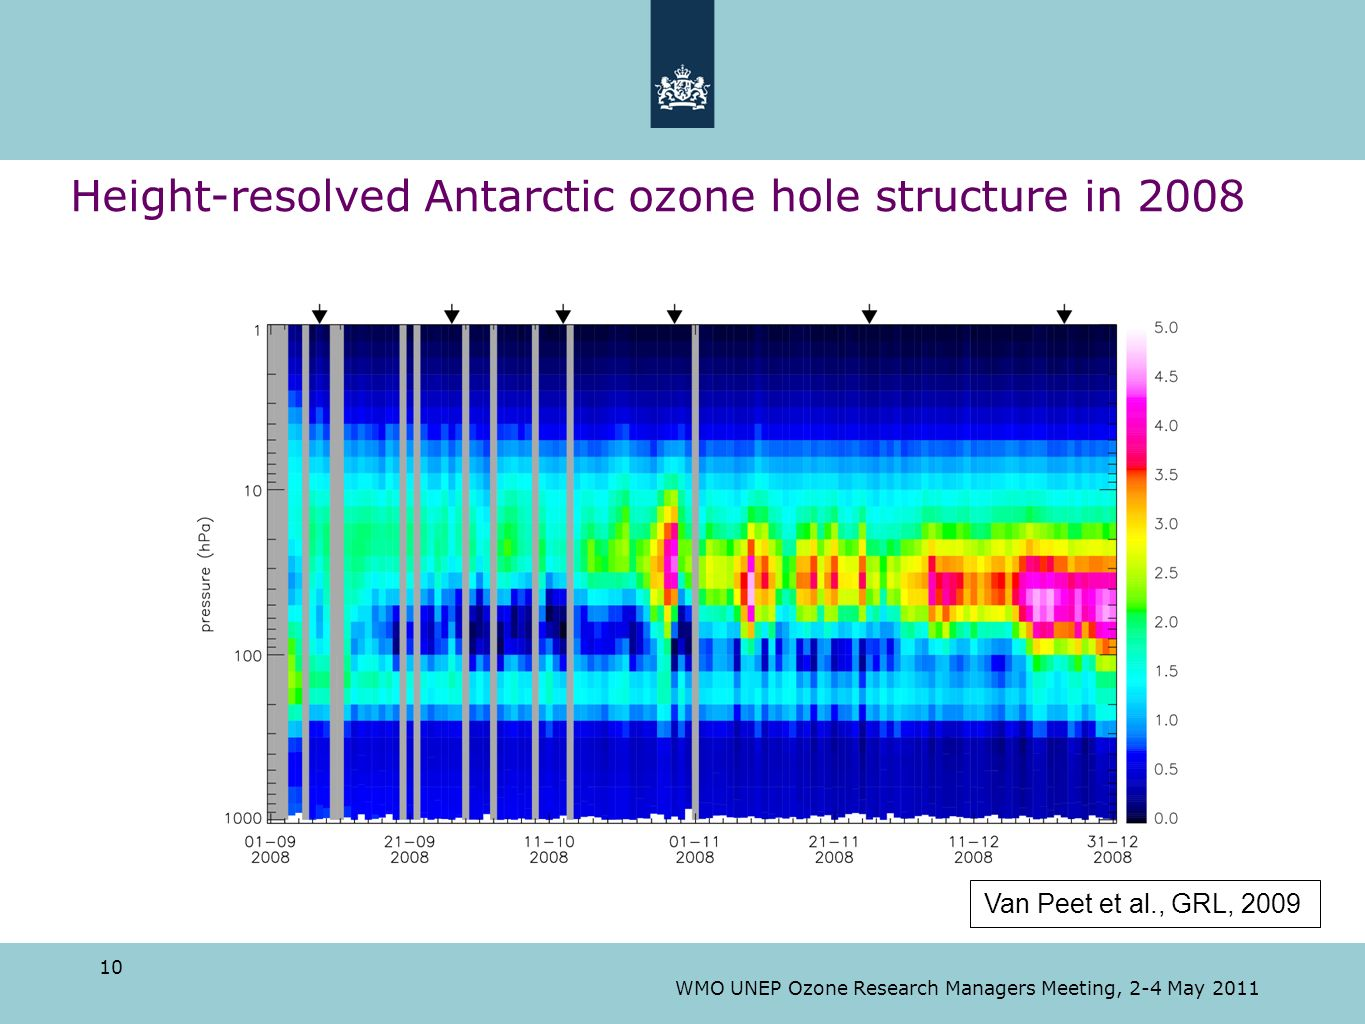 Height-resolved Antarctic ozone hole structure in 2008